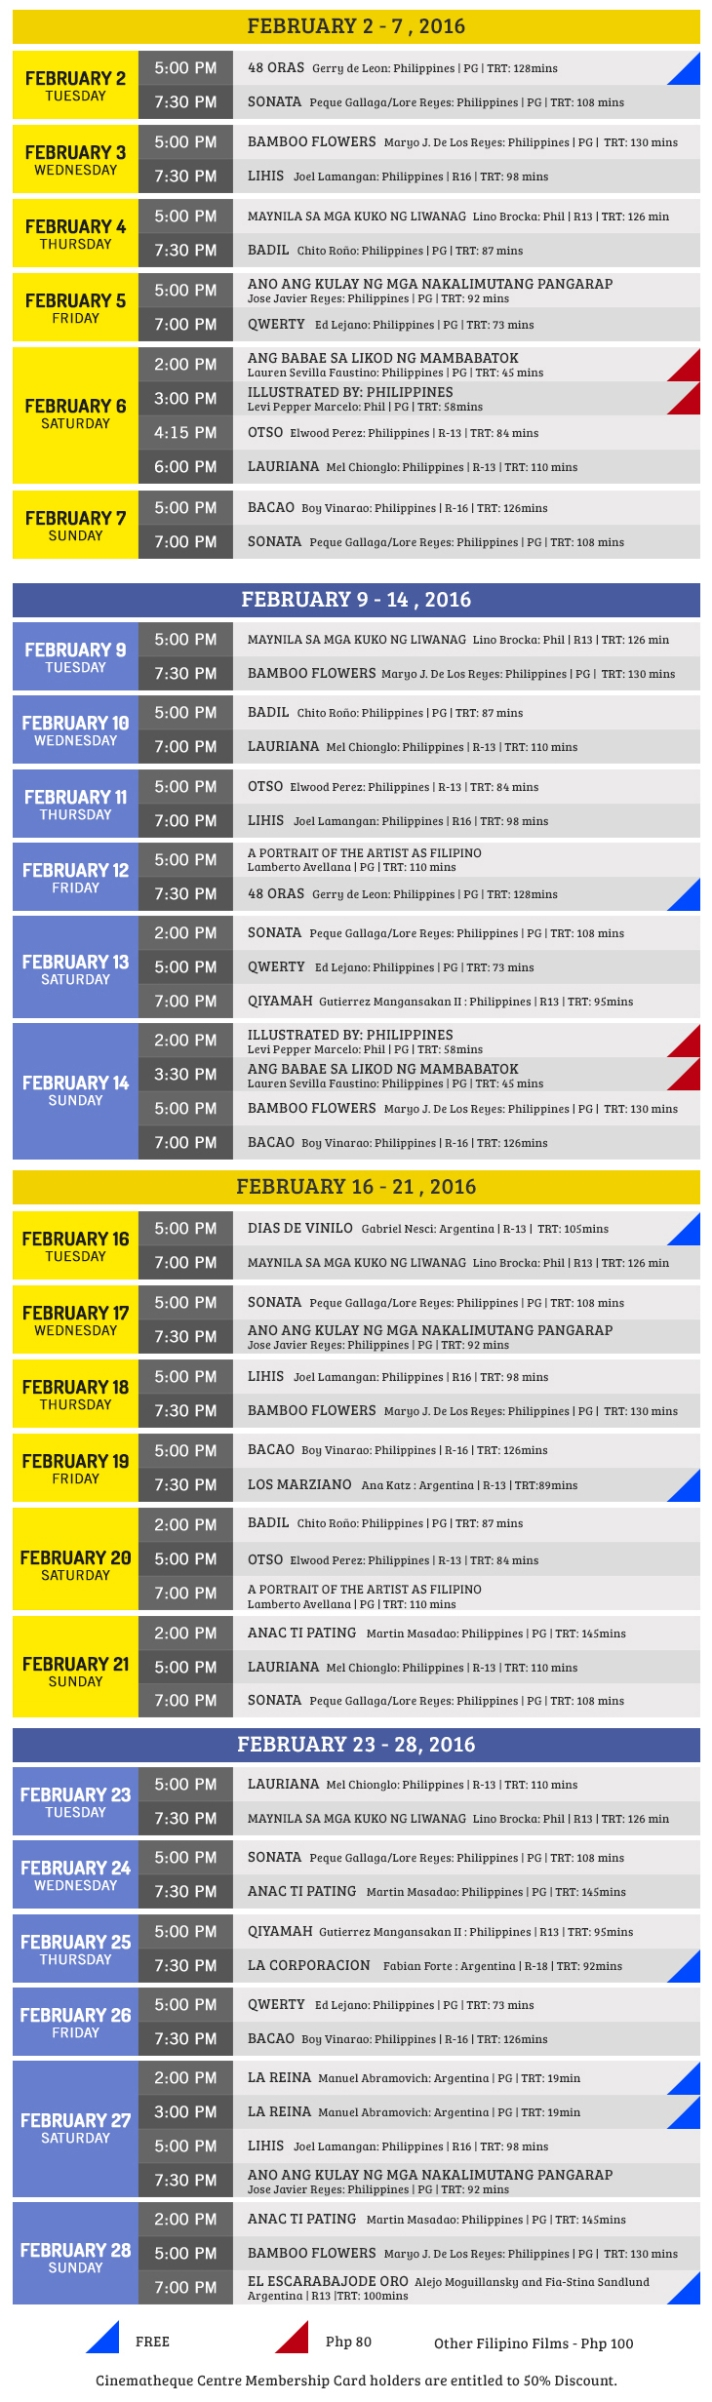 Cinematheque Centre Manila February 2016 Sched